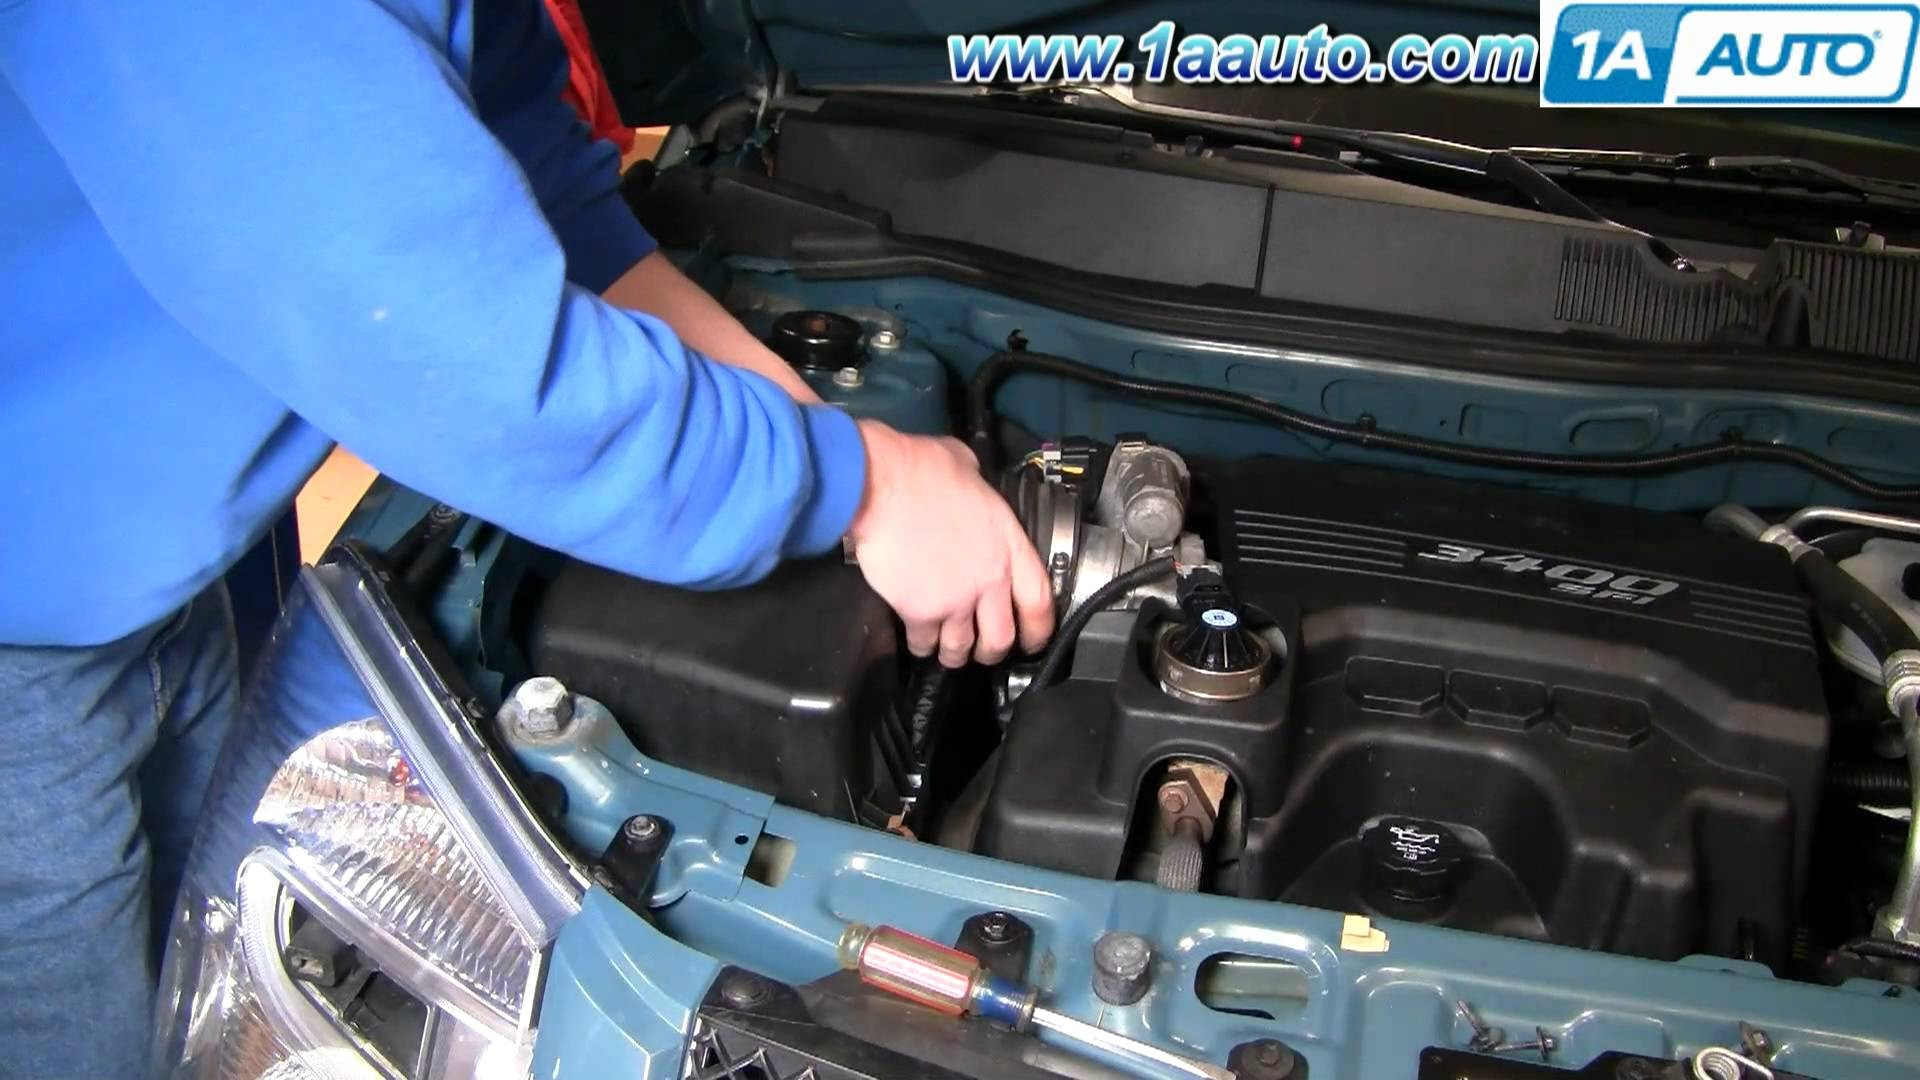 2007 Chevy Equinox Engine Diagram How to Install Replace Engine Air Filter Chevy  Equinox 3 4l 05 09